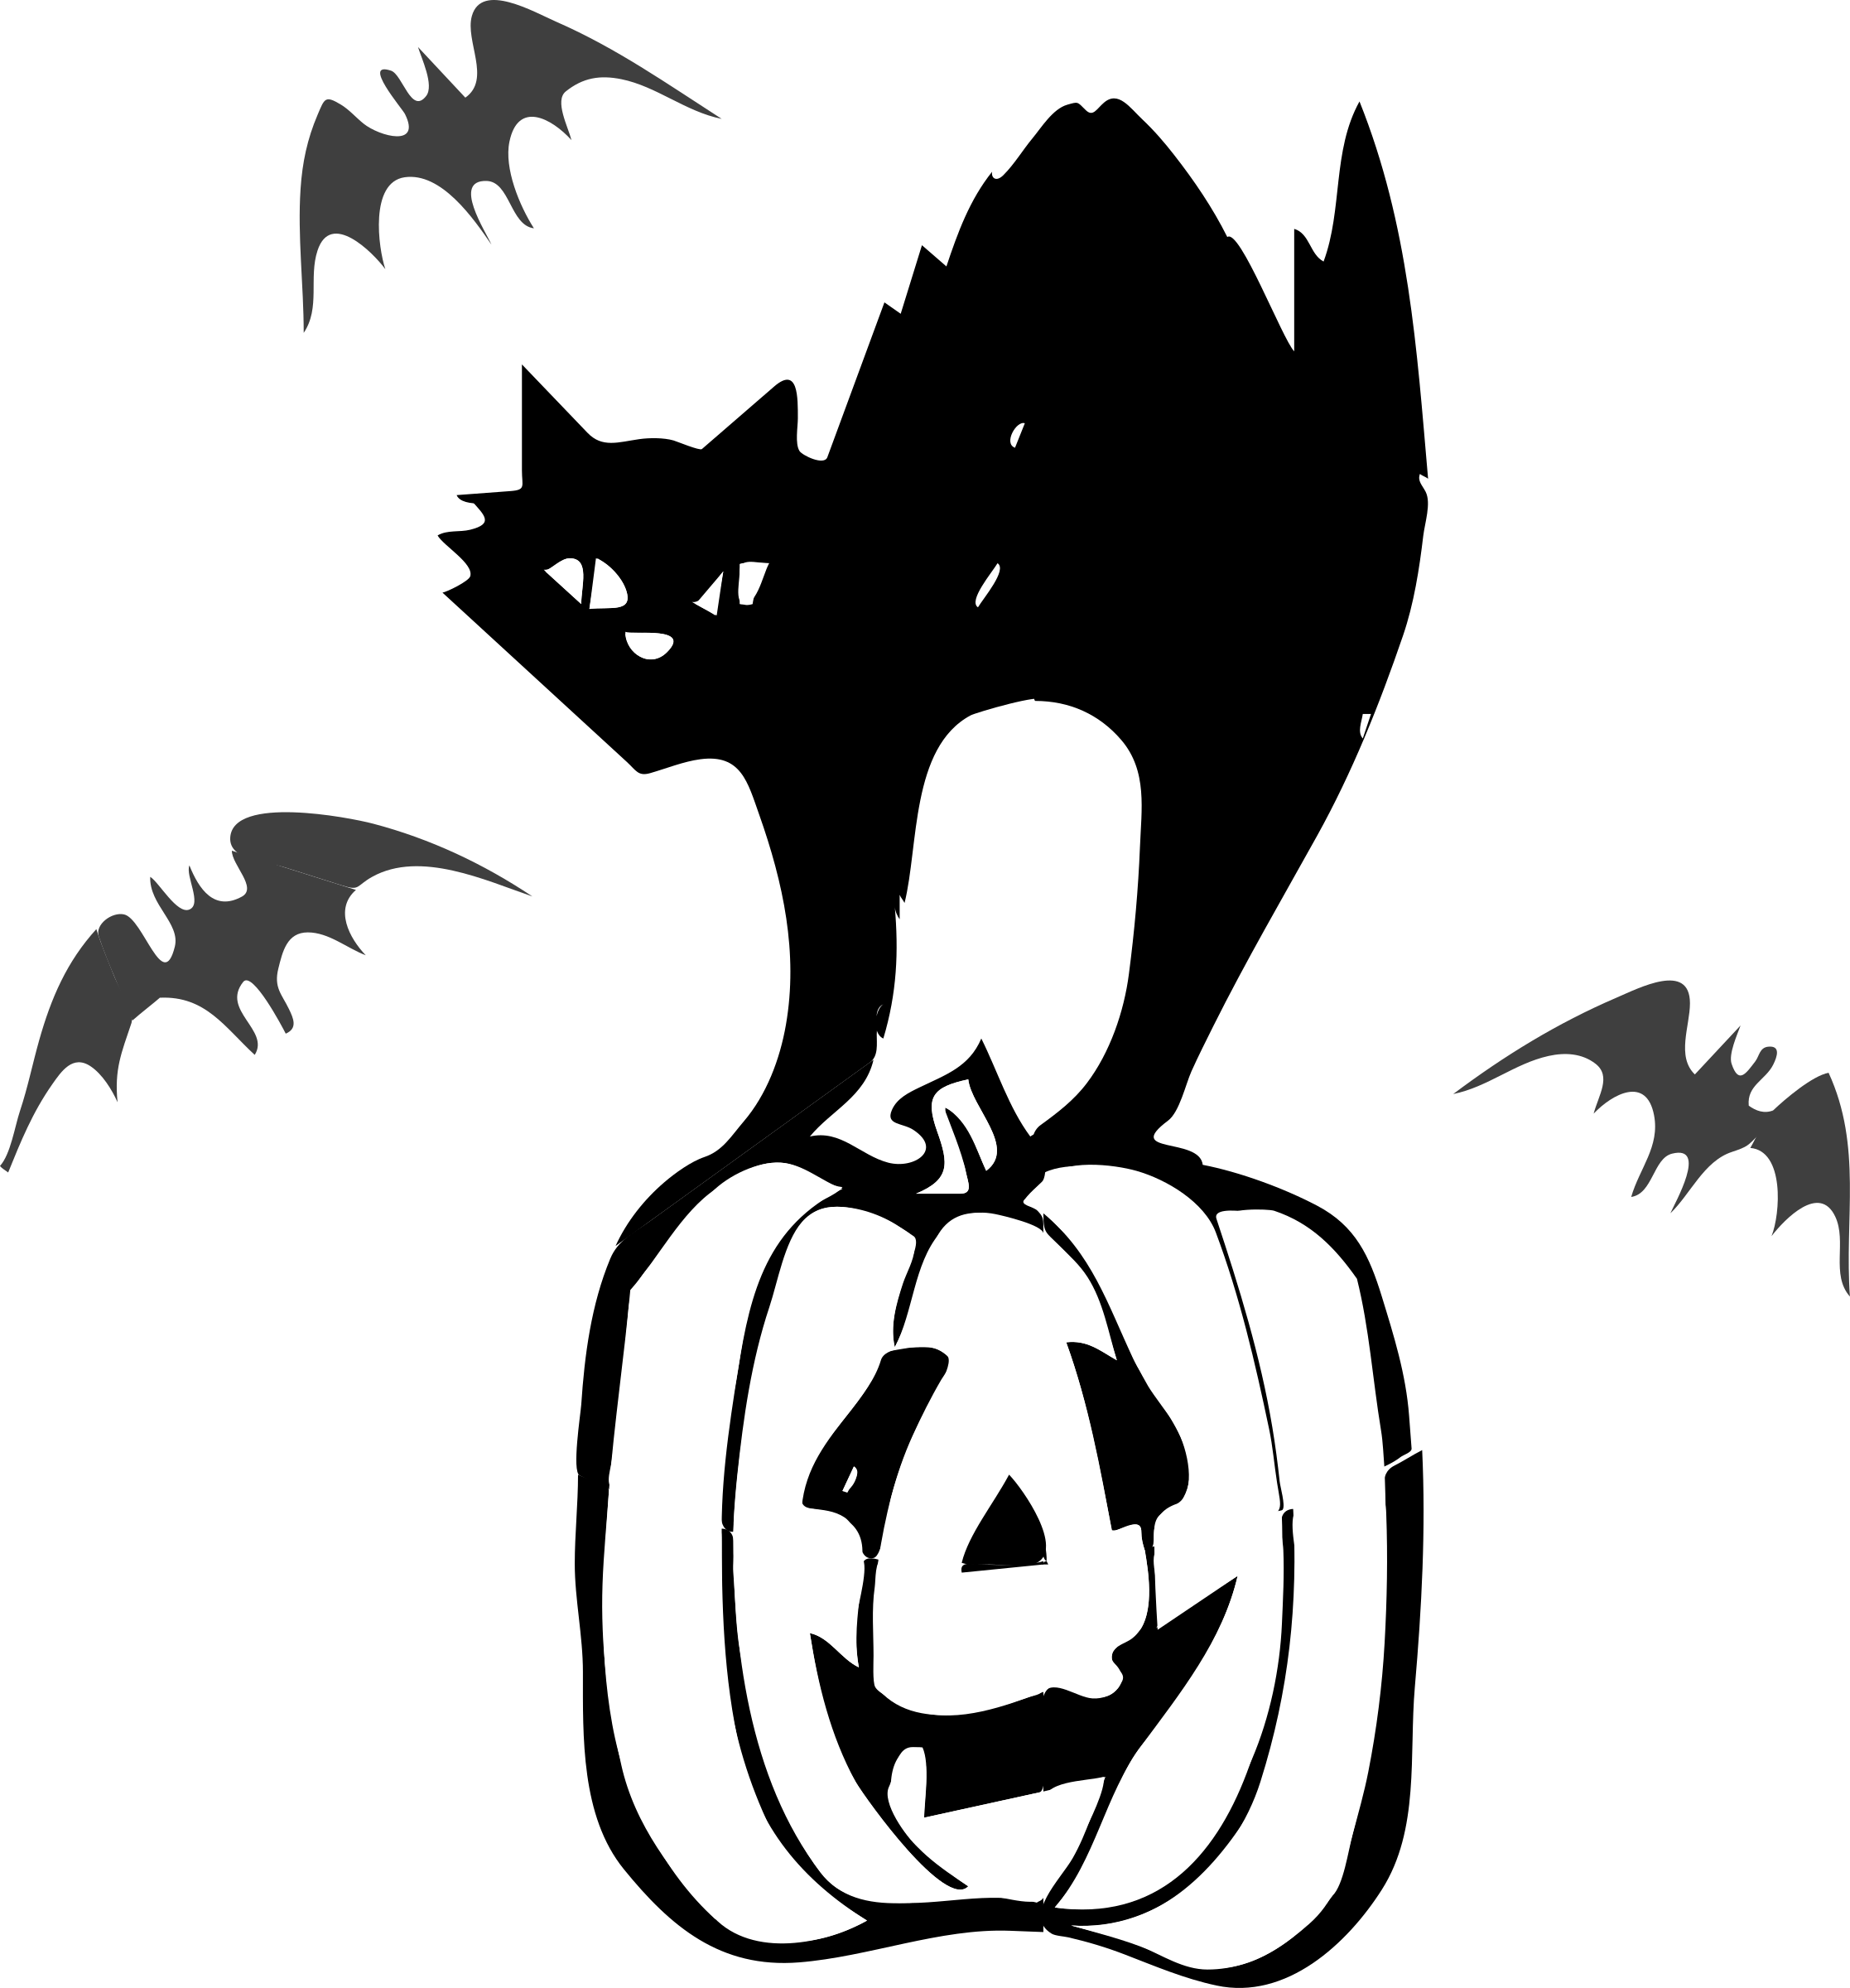 Black cat clipart black and white image free download Clipart - Architetto Gatto nero (Black Cat Halloween) image free download